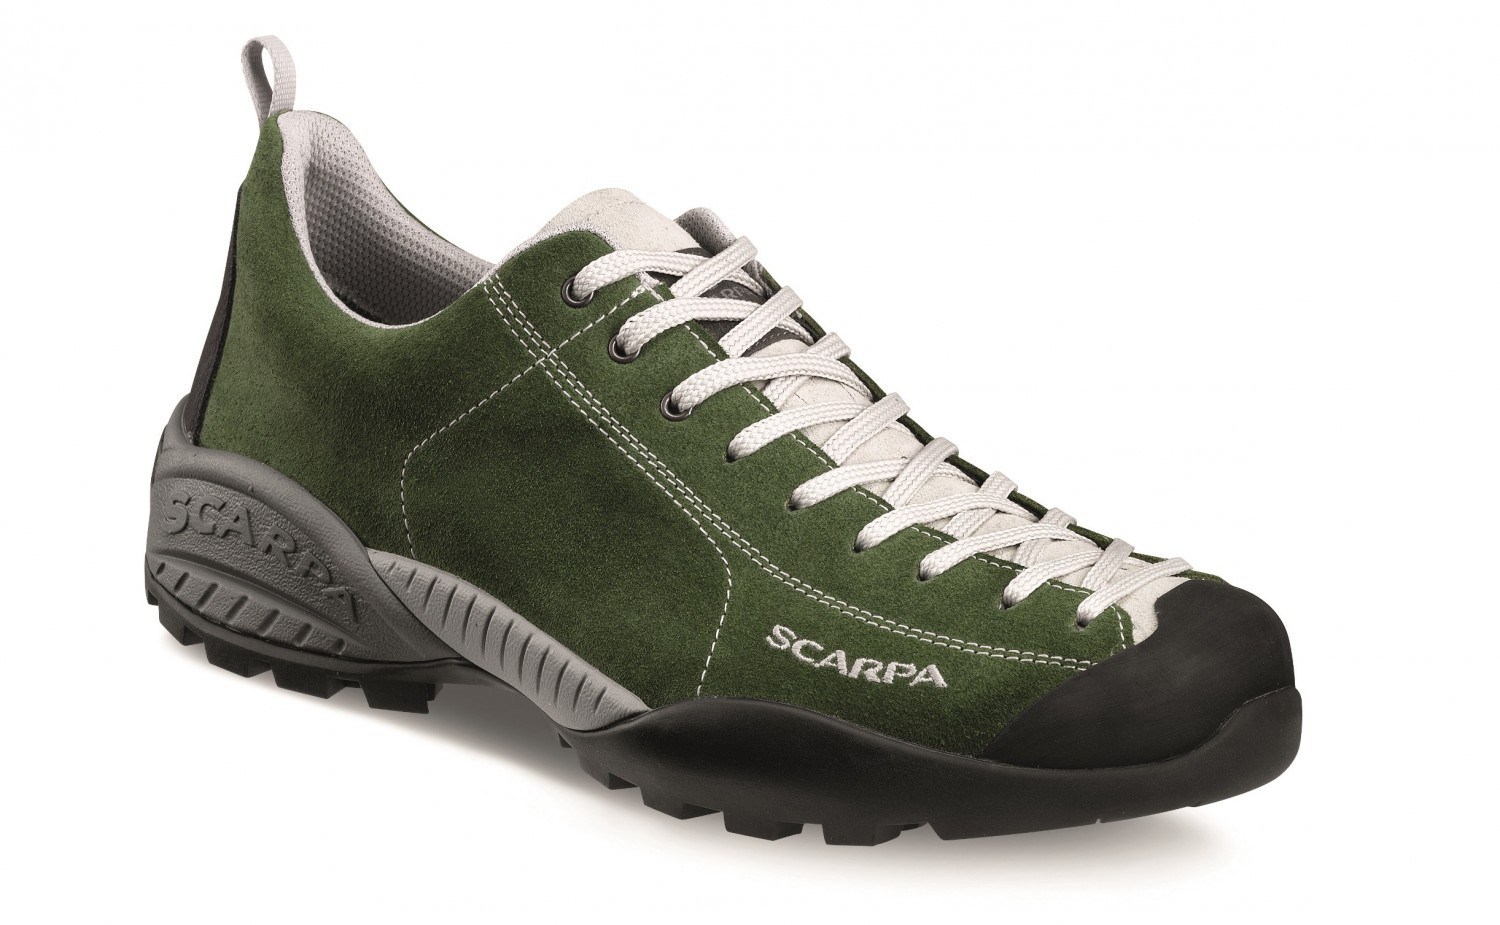 Scarpa - Mojito GTX Green Olive - Approach Shoes -